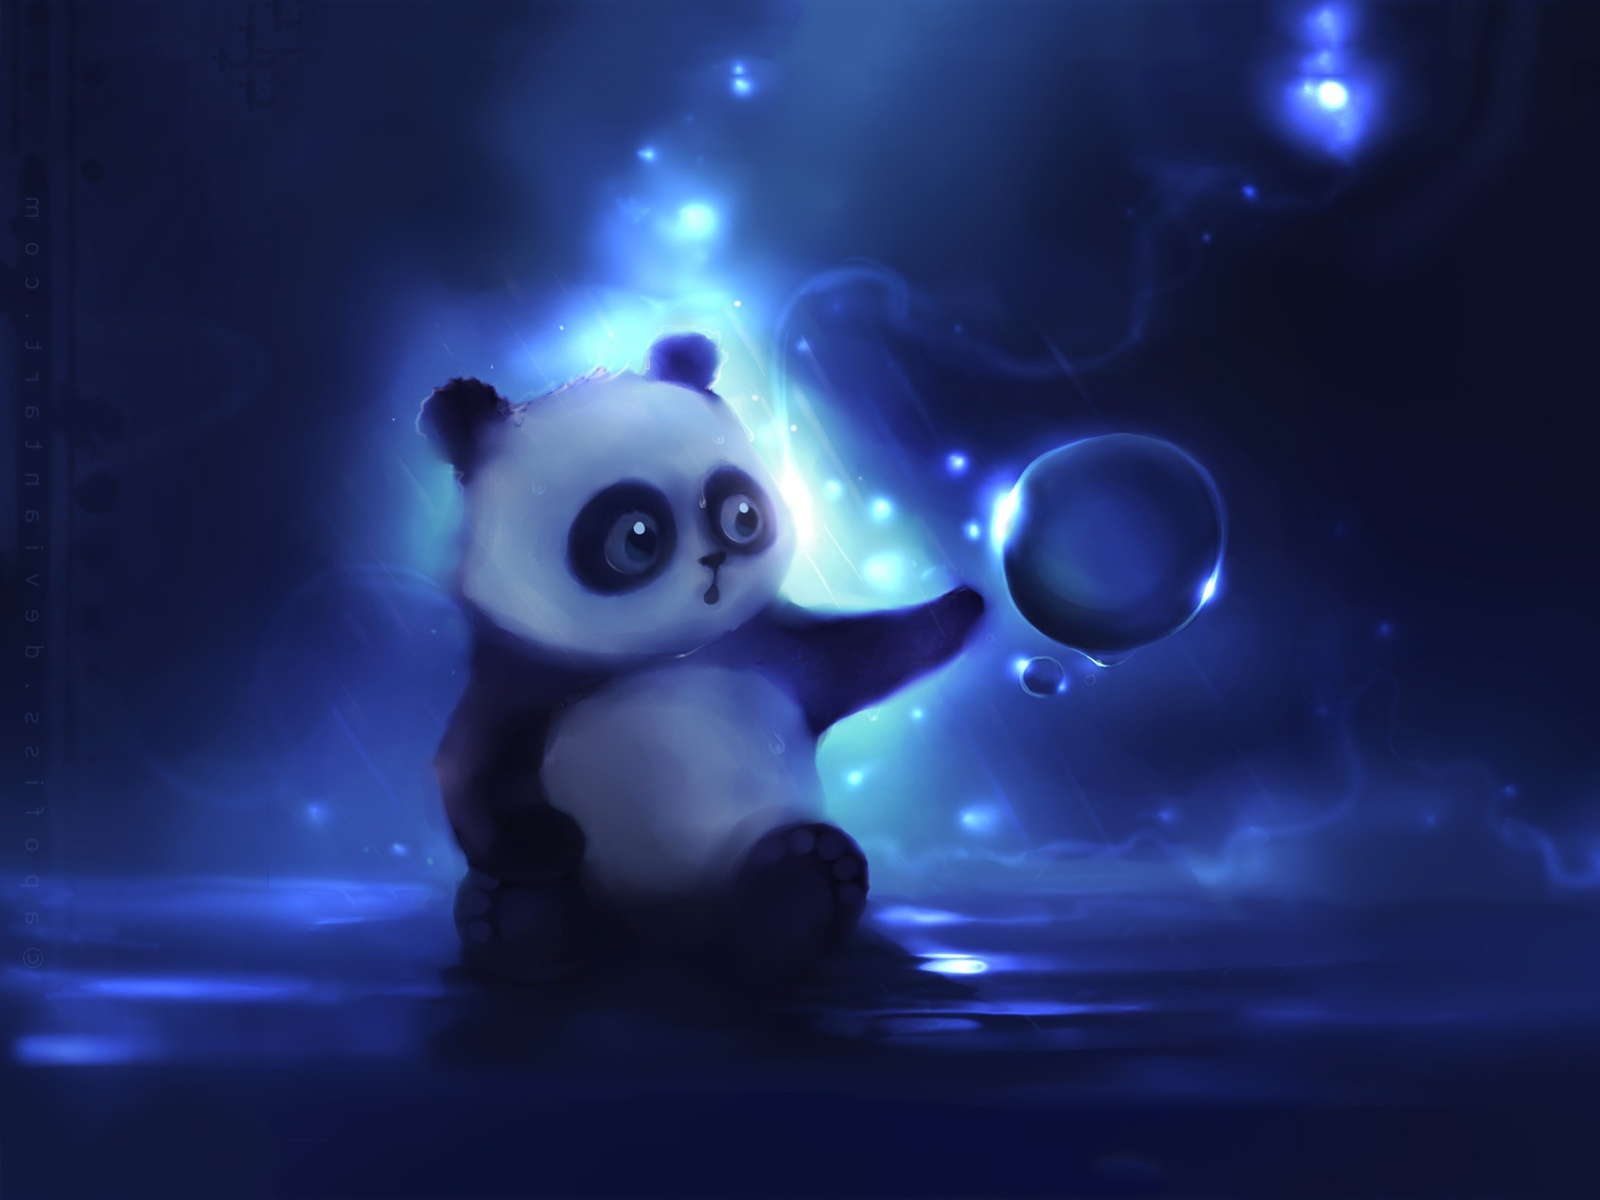 Little panda art